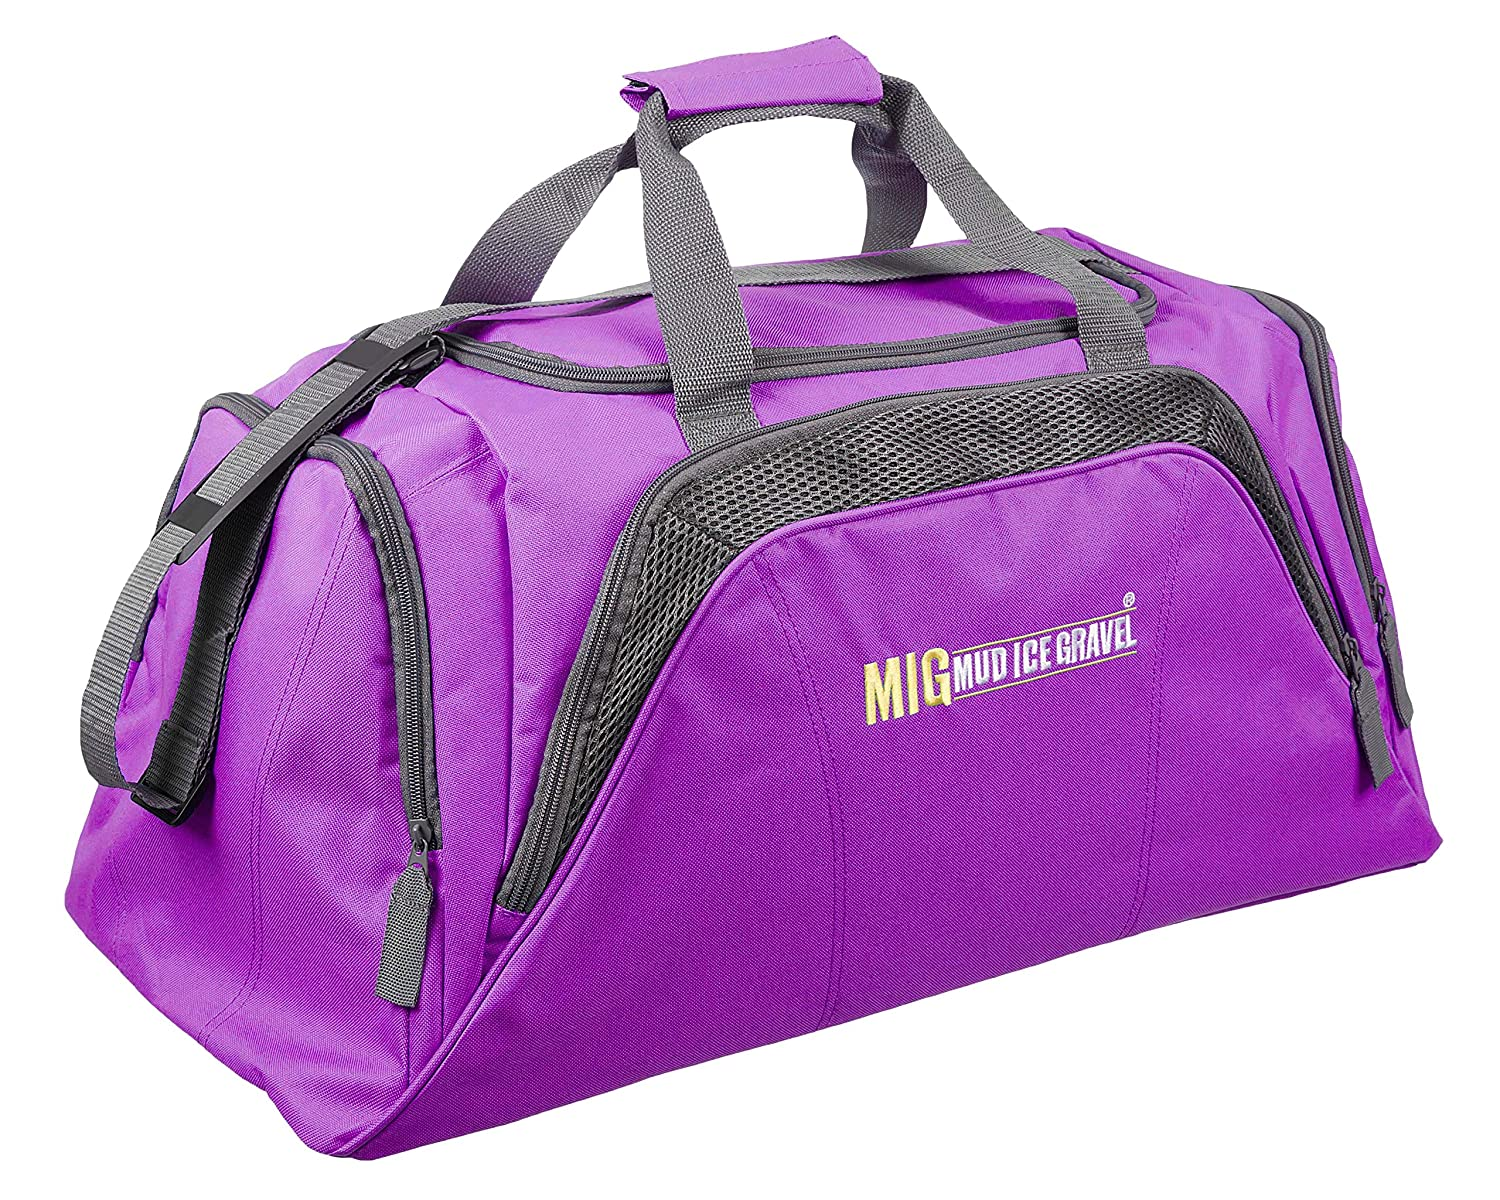 3474e80e7bcd Ladies Large Purple Holdall Sports Bag - Sports Travel School Work   Amazon.co.uk  Luggage